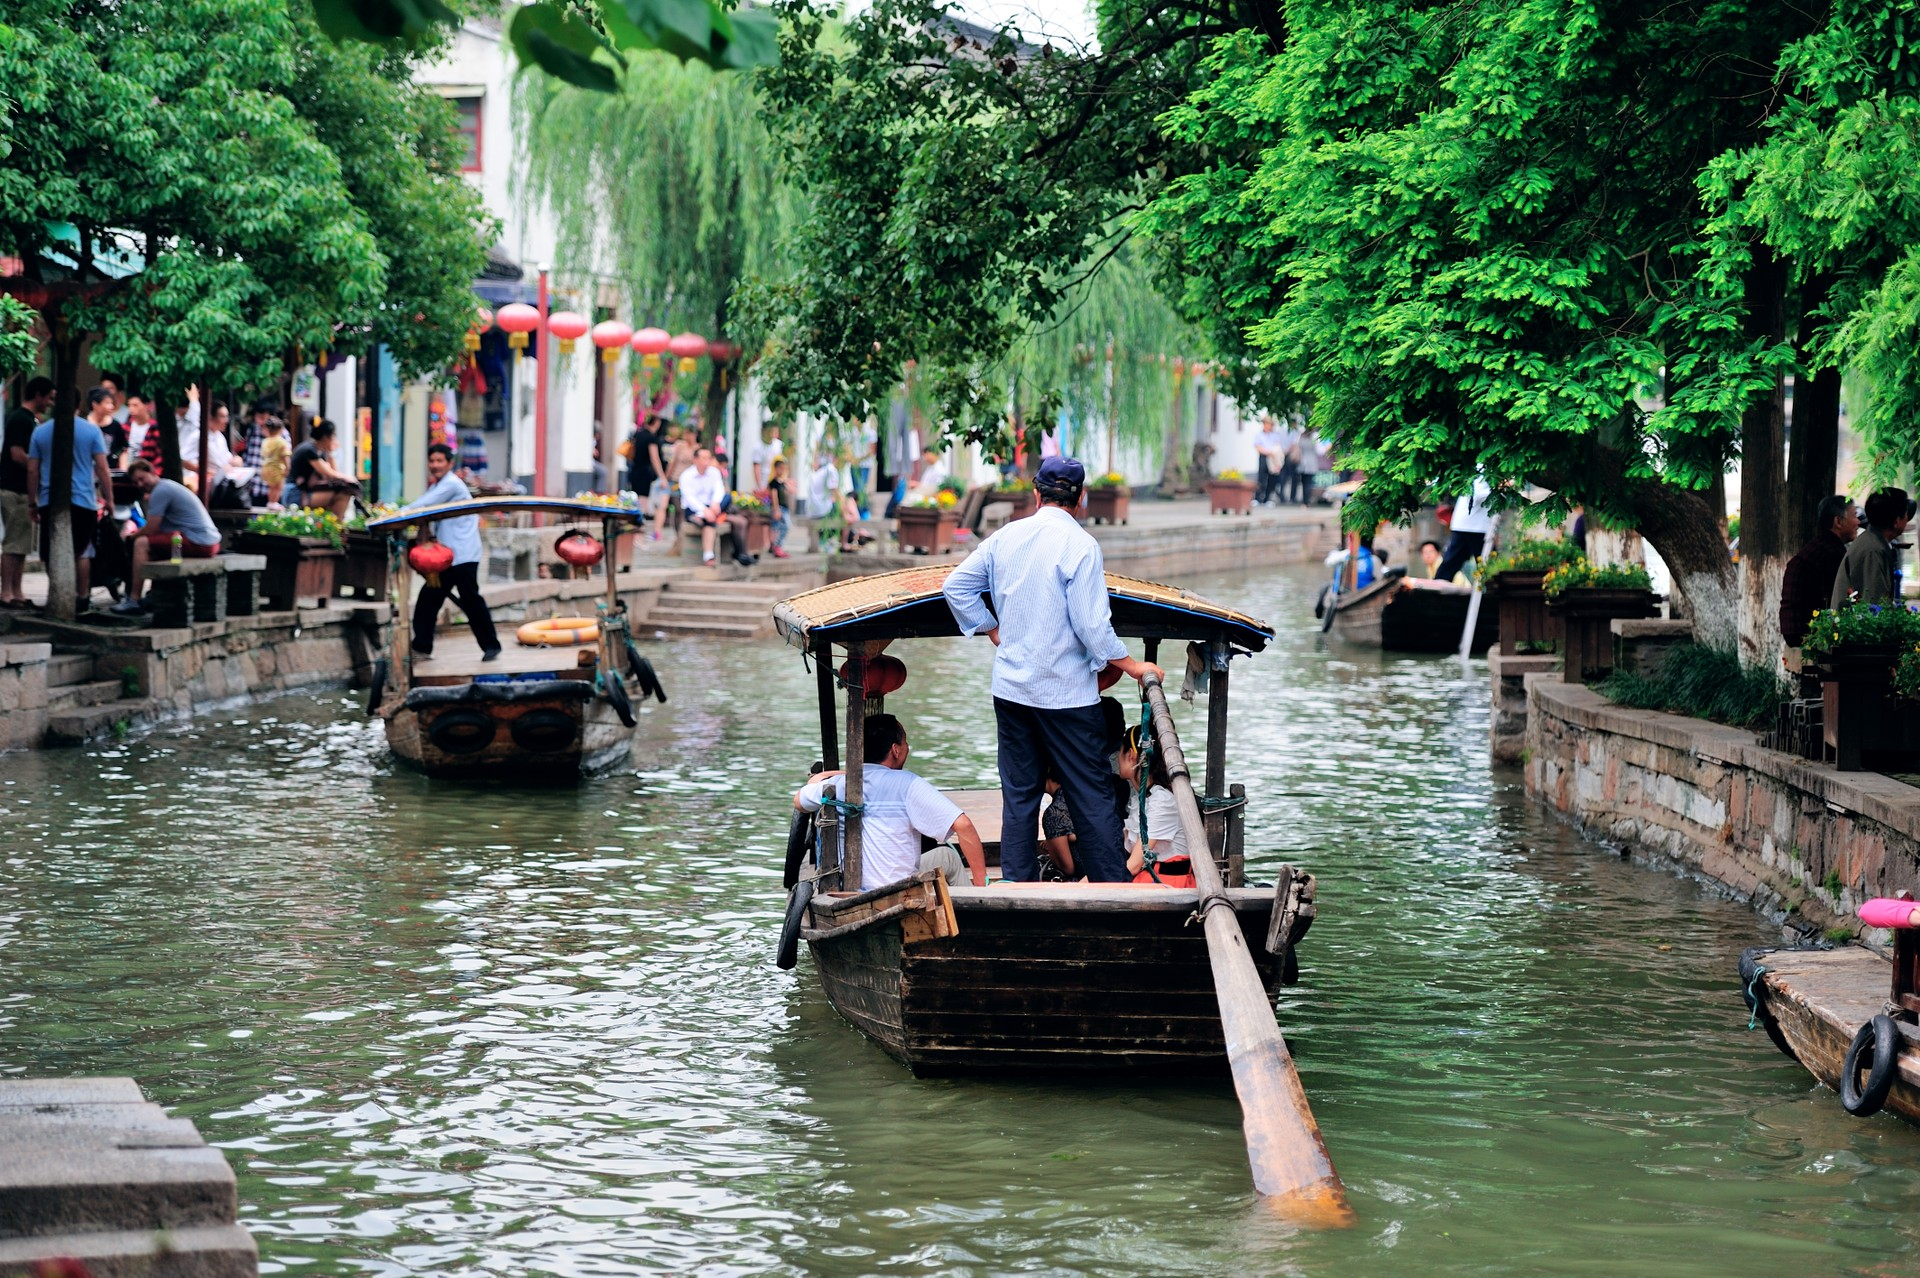 Boat on a canal in Zhujiajiao, China